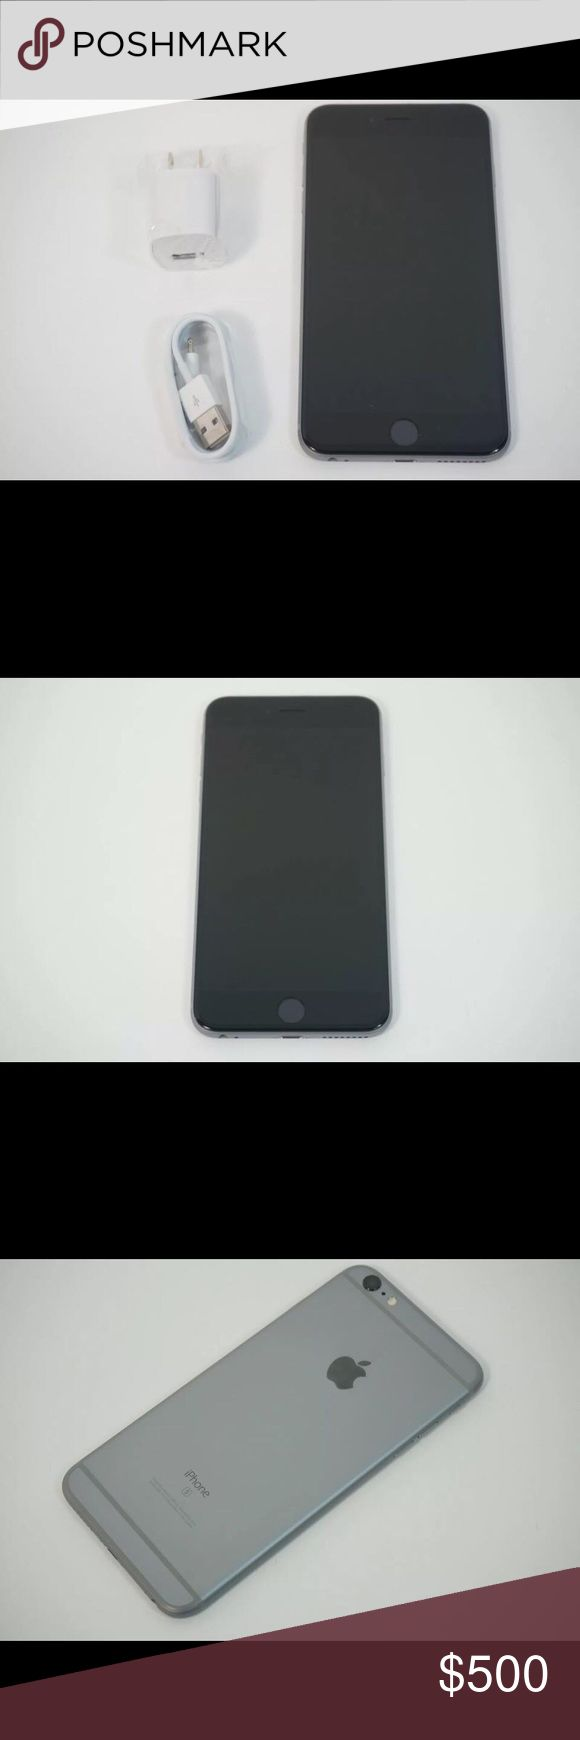 iPhone 6s Plus Device is in very good cosmetic condition w/minor wear. Device is in 100% working condition. It has been extensively tested & found to be fully functional. Device can be activated with Verizon and is factory unlocked for any GSM carrier worldwide. This device will NOT work with other CDMA networks such as Sprint or Boost Mobile.  I have personally been using this phone & its in great working condition.  Items included: charger, USB charger Items not included: SIM card, box…